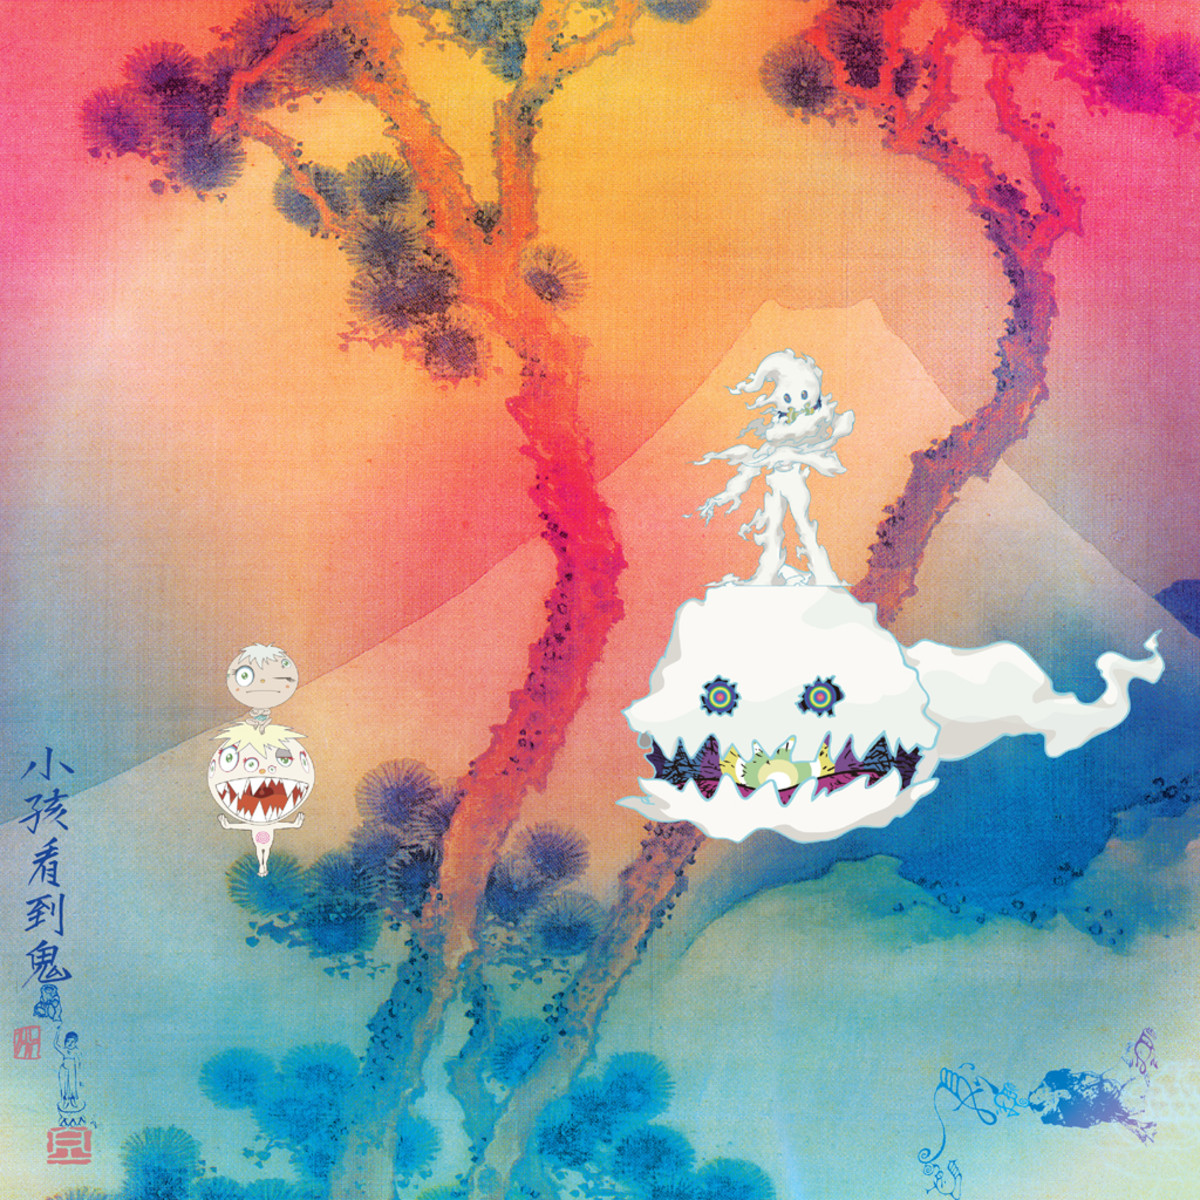 kids-see-ghosts-kids-see-ghosts-art